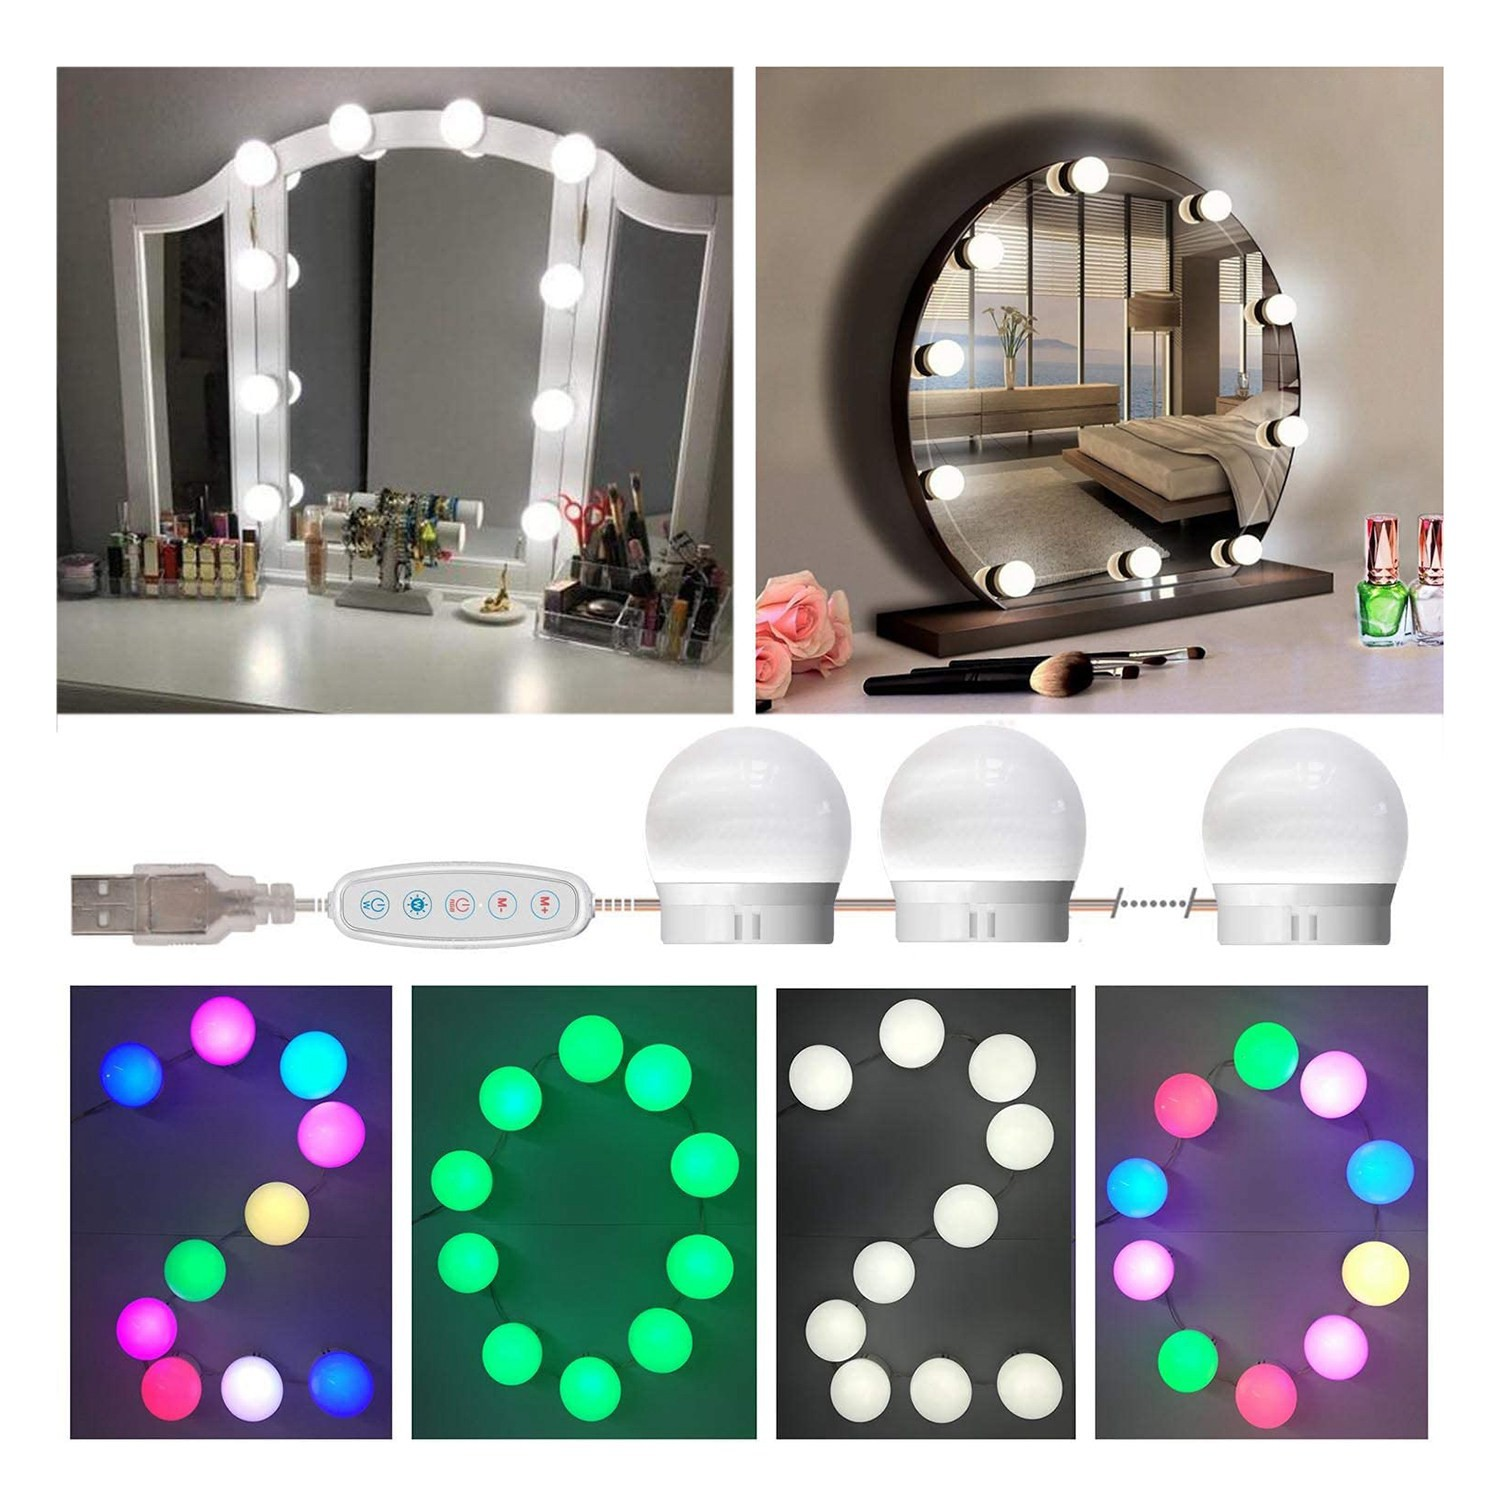 Vanity Lights For Mirror Adjustable Rgb Color Diy Mirror Lights Kit Shopee Philippines